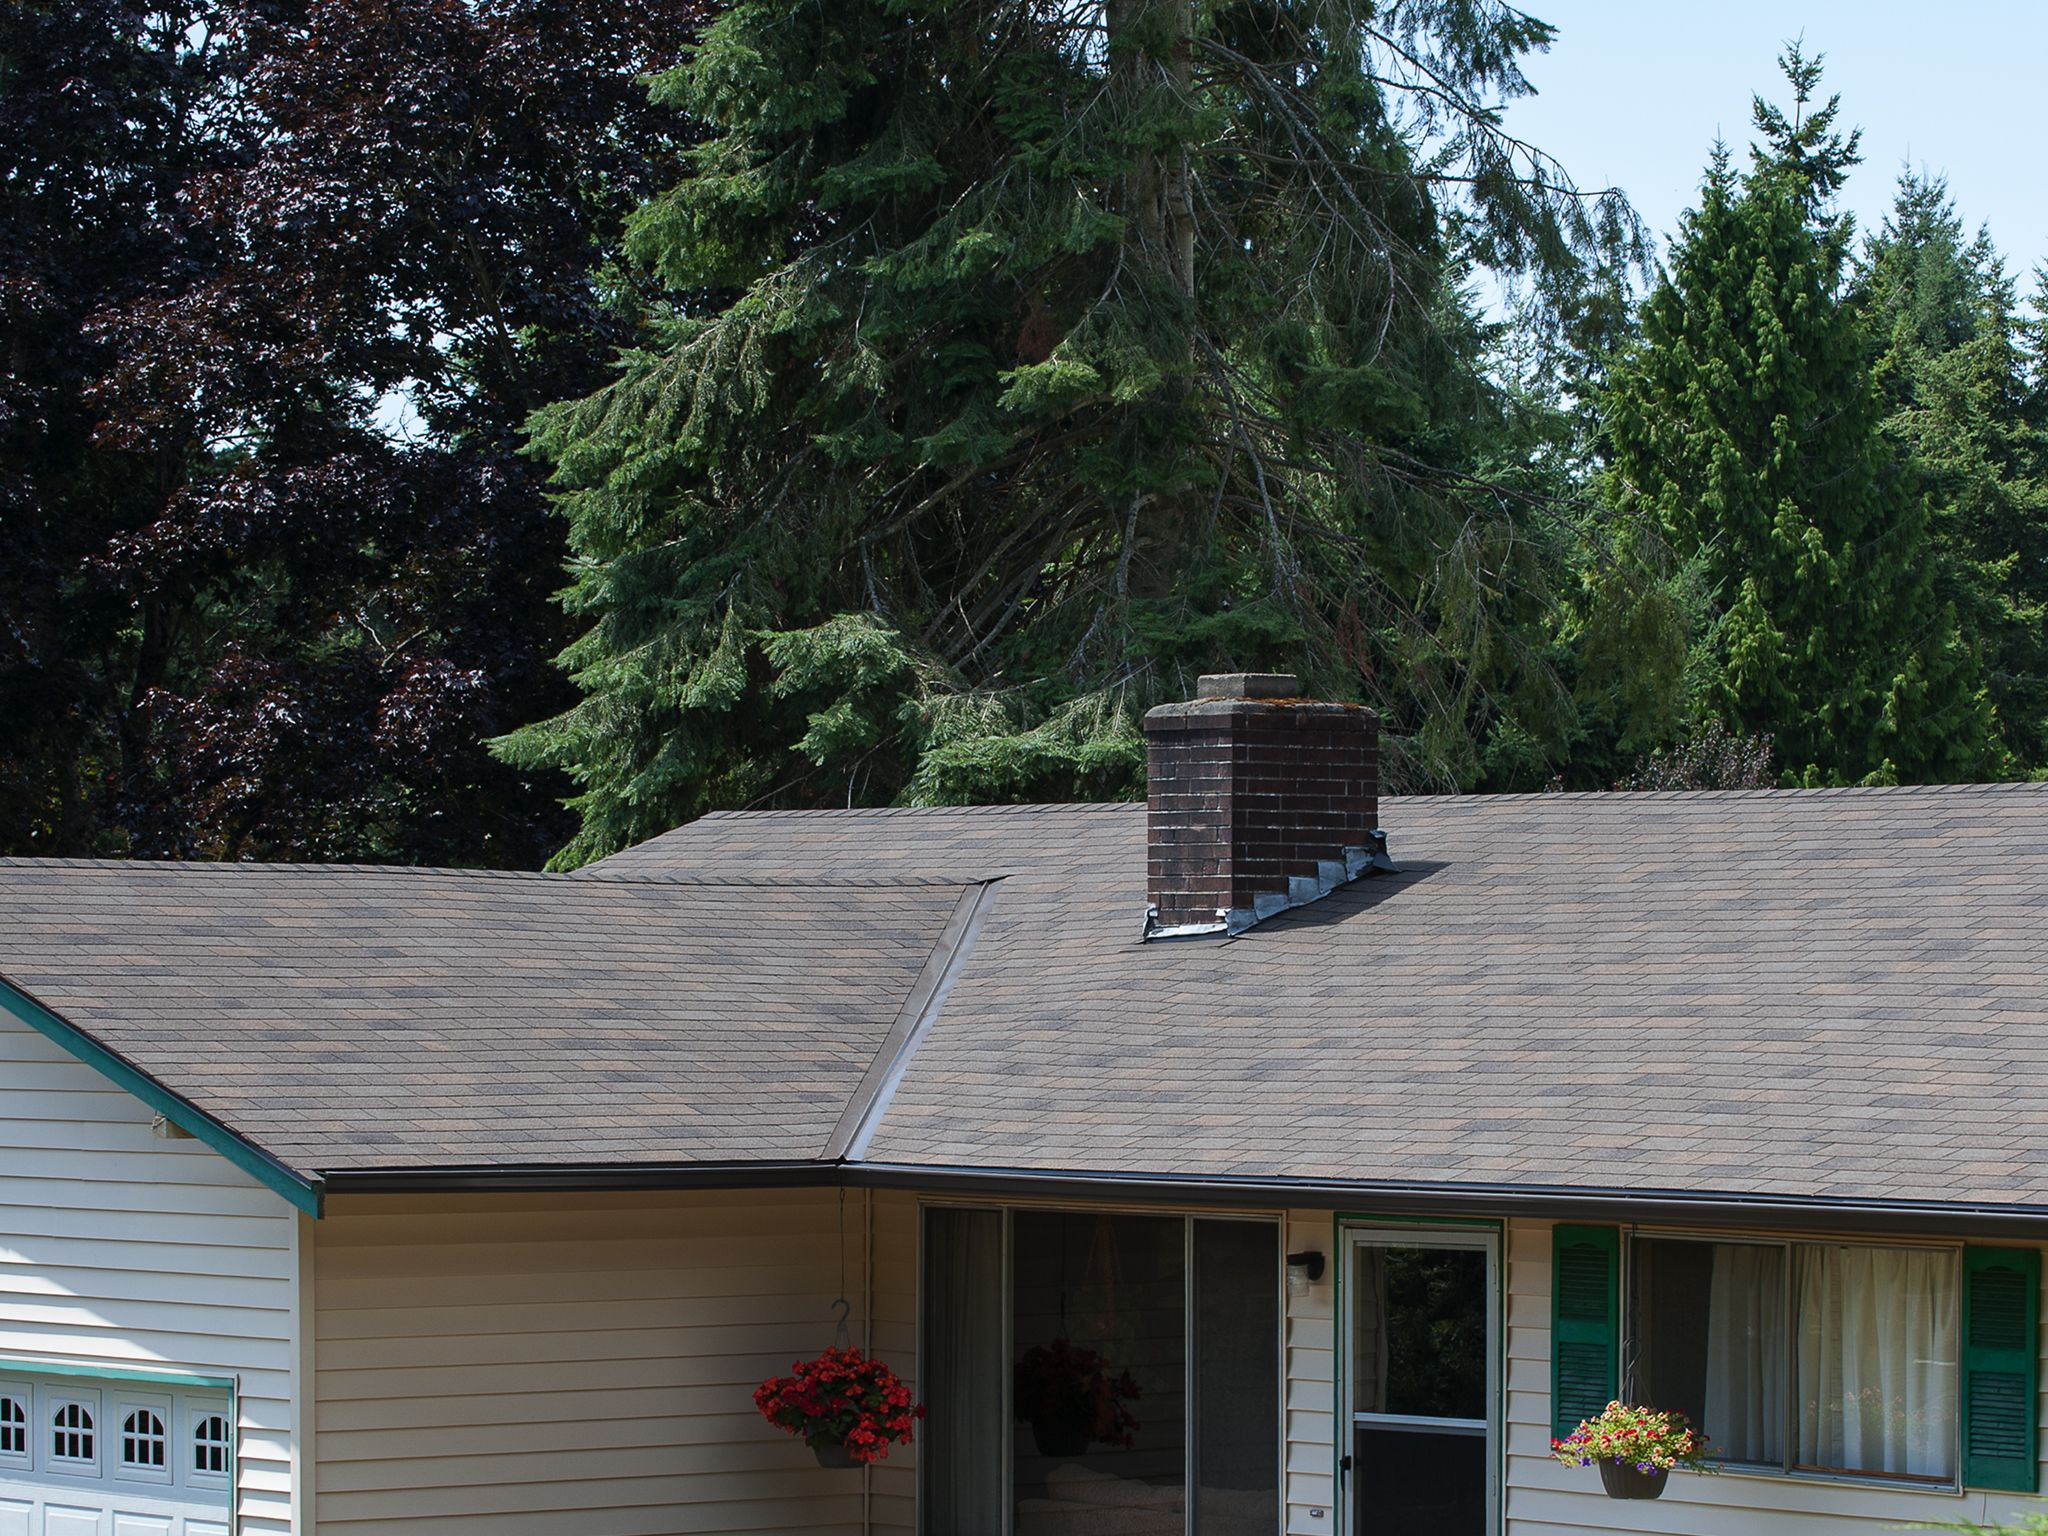 Oakwood Tahoma 3tab Asphalt Roofing Shingles Pabcoroofing Cheap Roofing Roof Architecture Roof Shingles